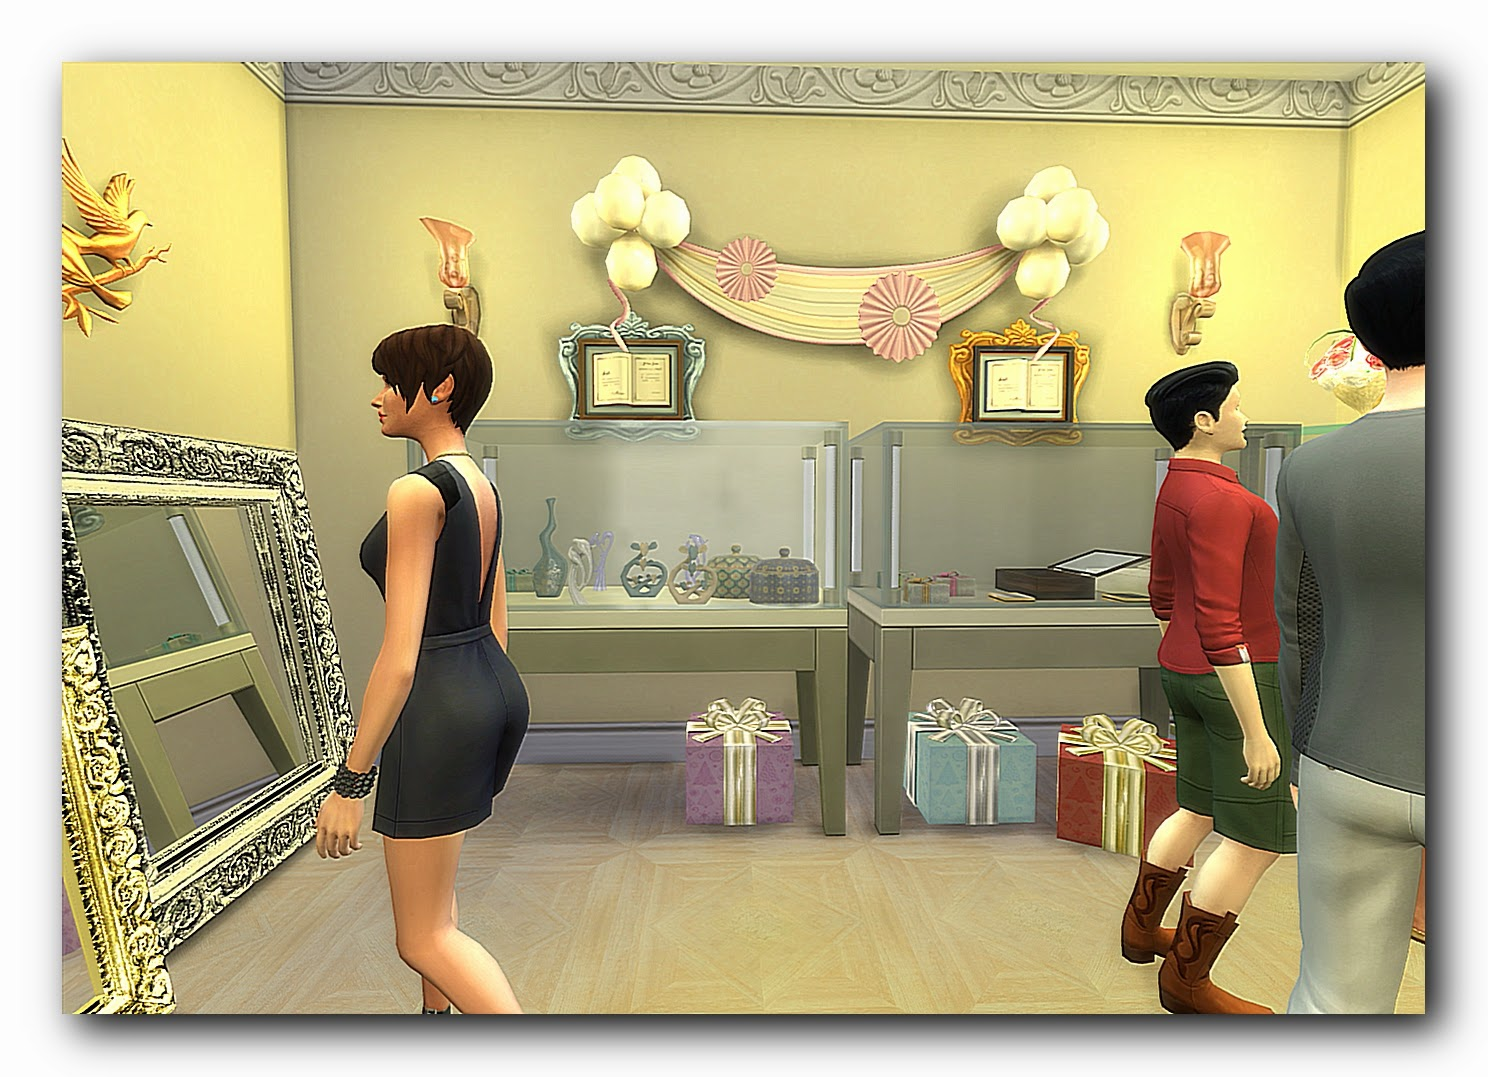 Wedding shopping by Dalila